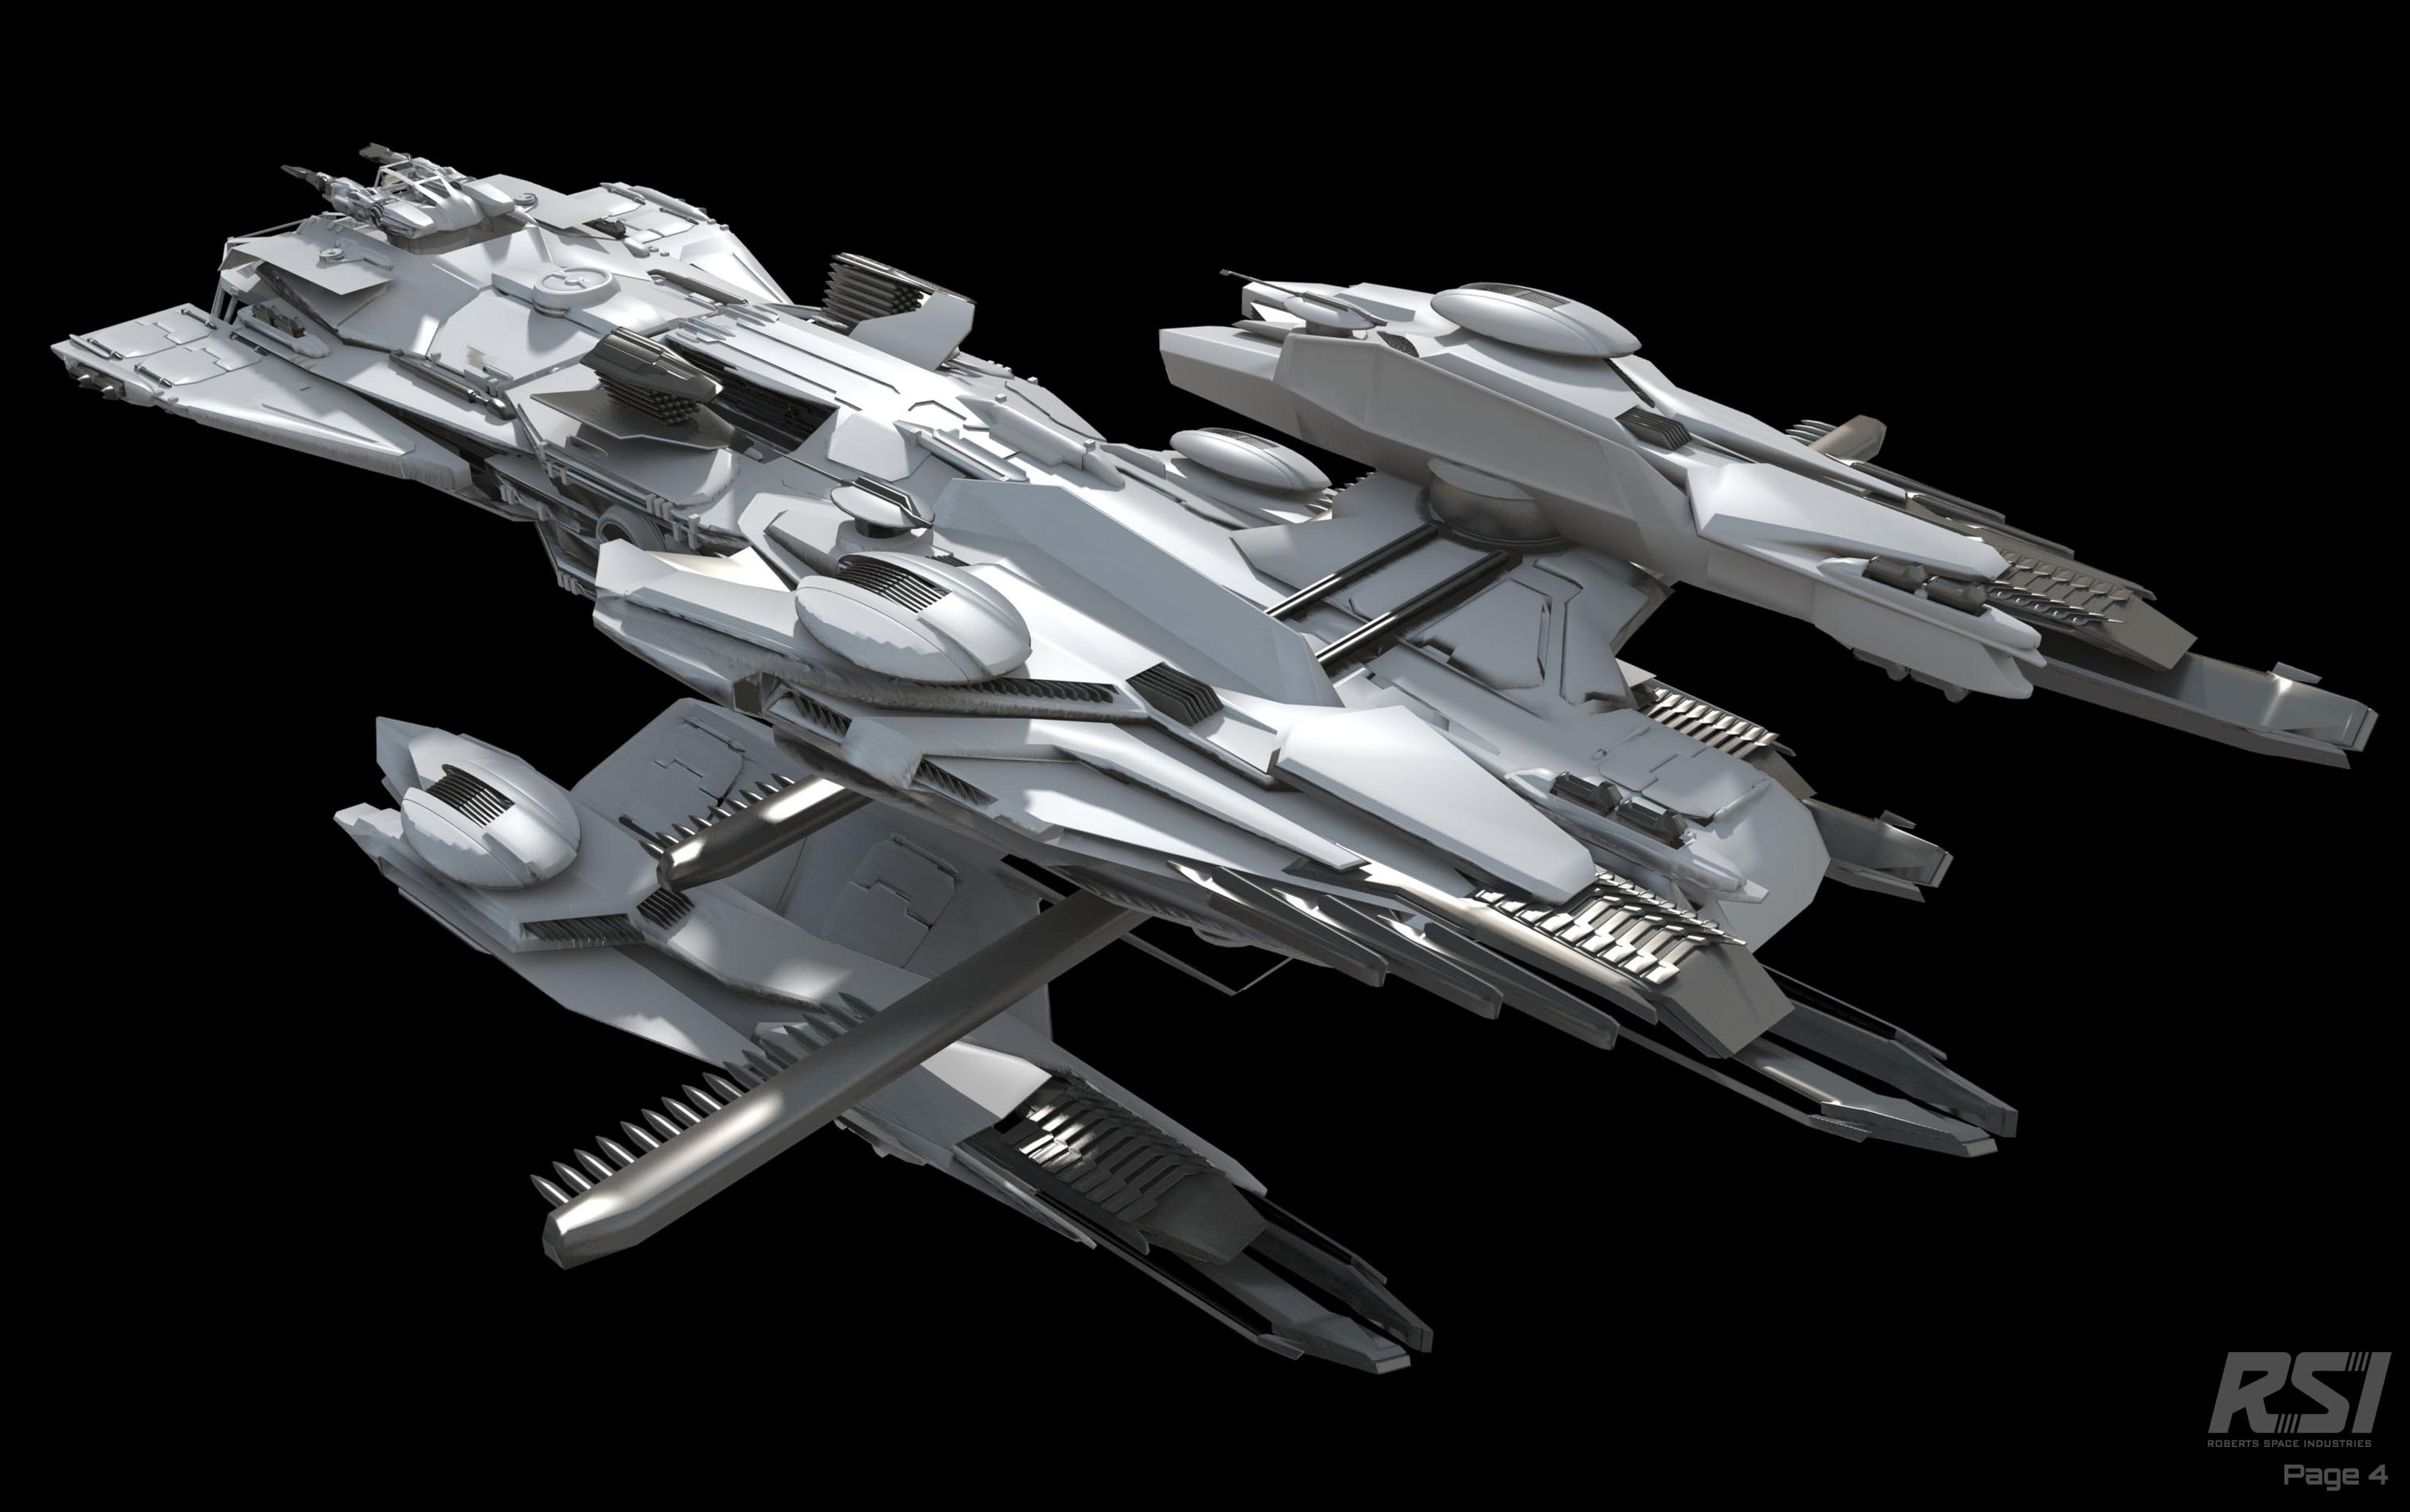 Breaking Ign Posts Images Of The Constellation Wing